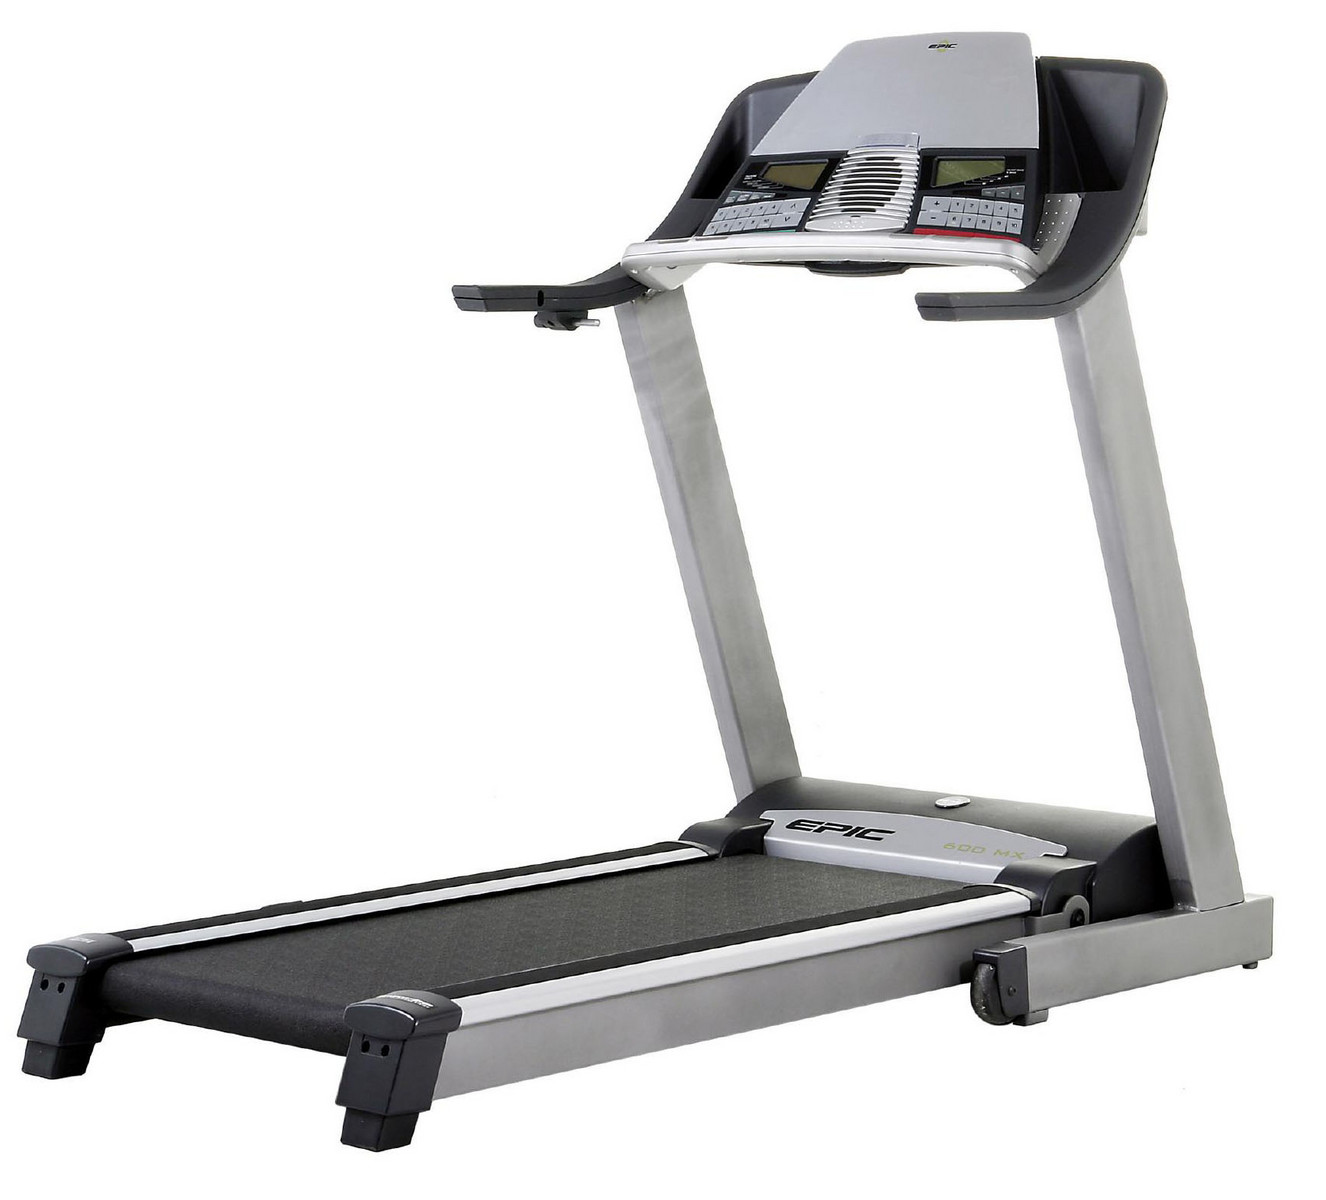 Epic 600 MX Treadmill